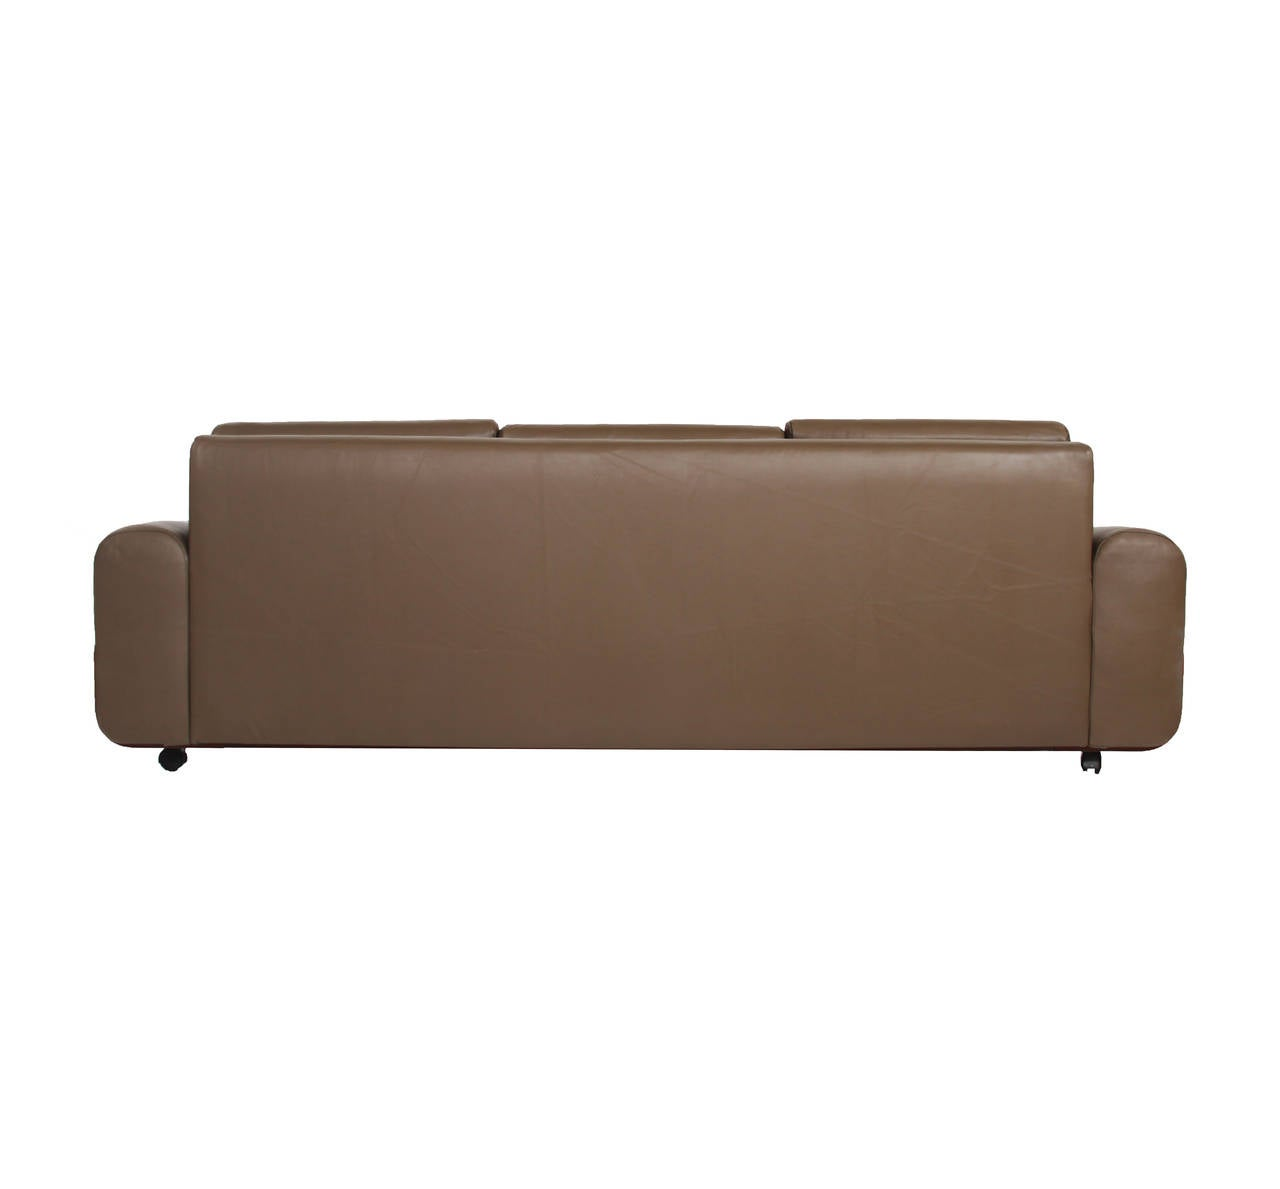 Tendo Brasileira Rosewood and Leather Sofa 4